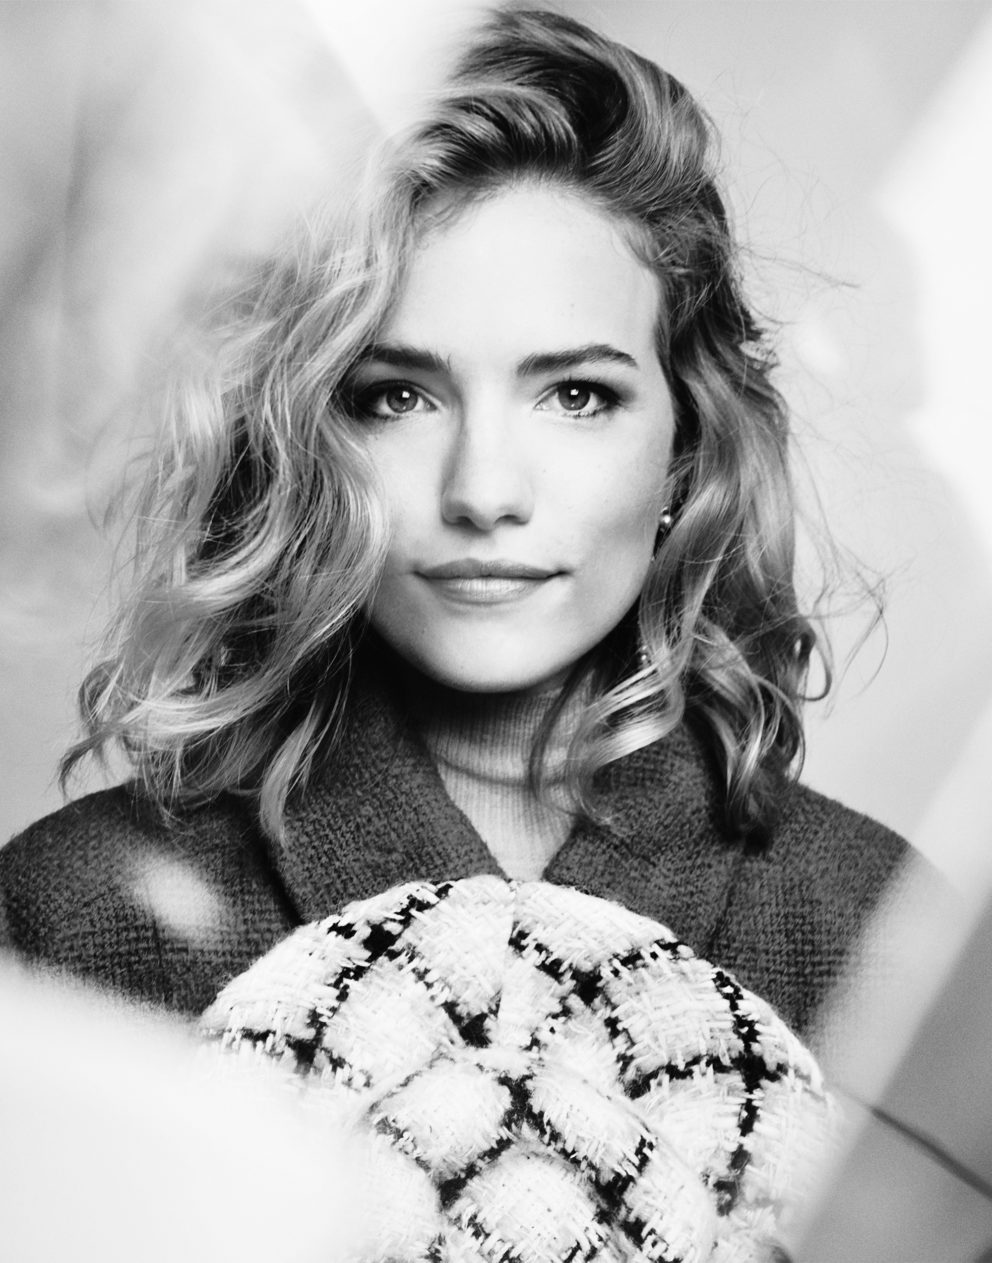 190925 0020 Sbjct Willa Fitzgerald 168 By Christian Hogstedt